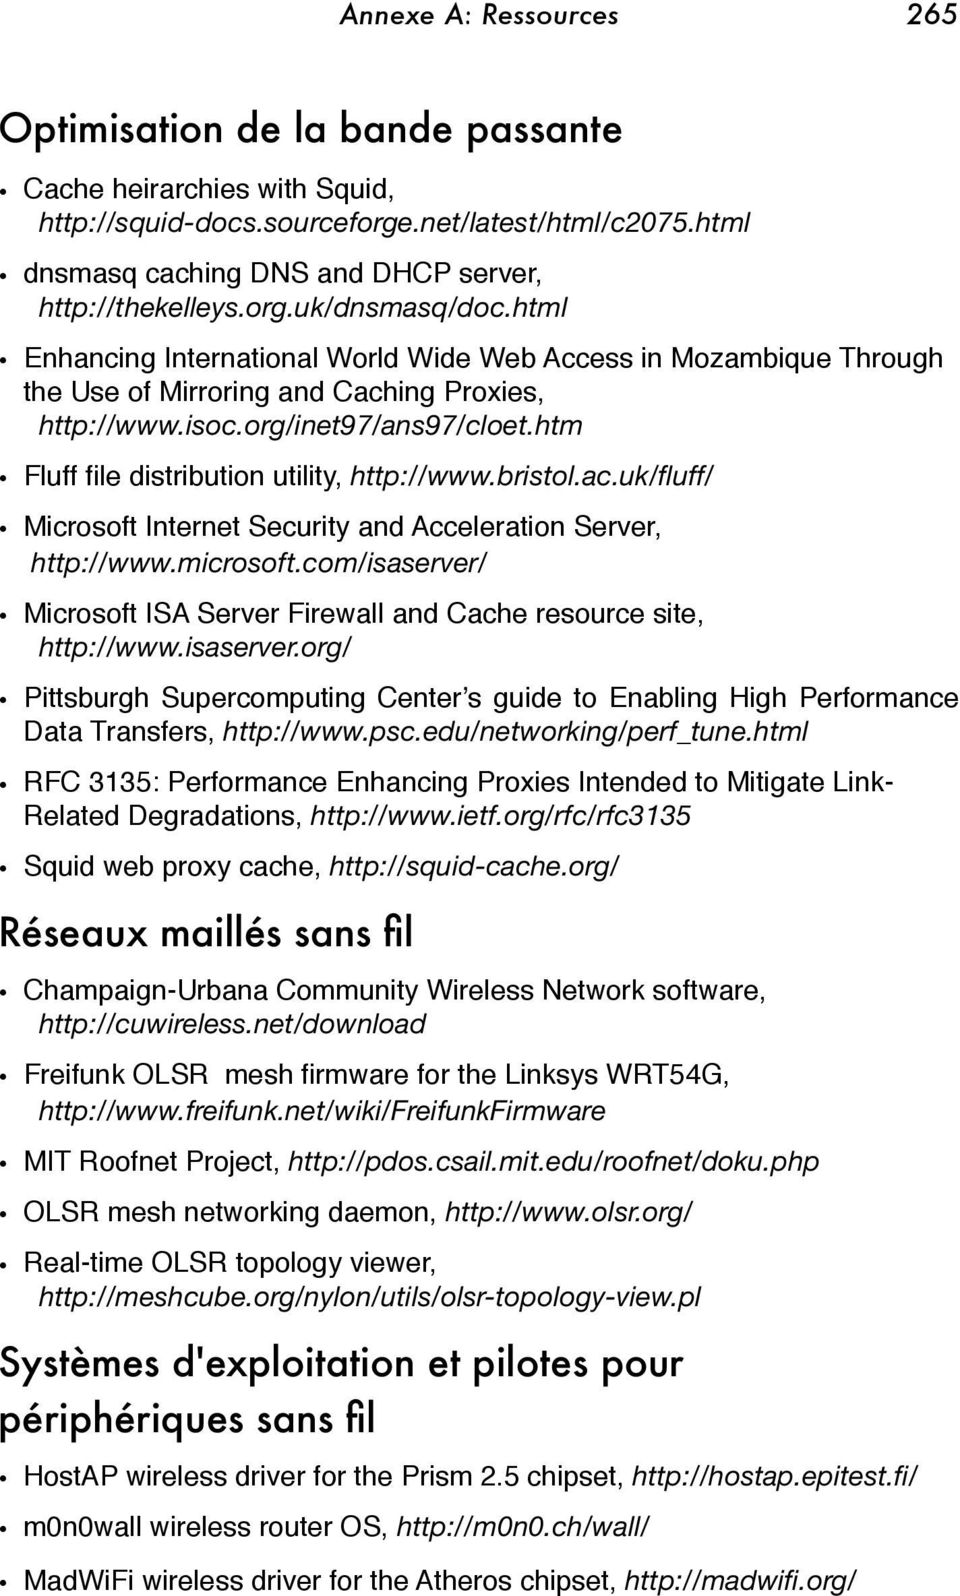 html Enhancing International World Wide Web Access in Mozambique Through the Use of Mirroring and Caching Proxies, http://www.isoc.org/inet97/ans97/cloet.